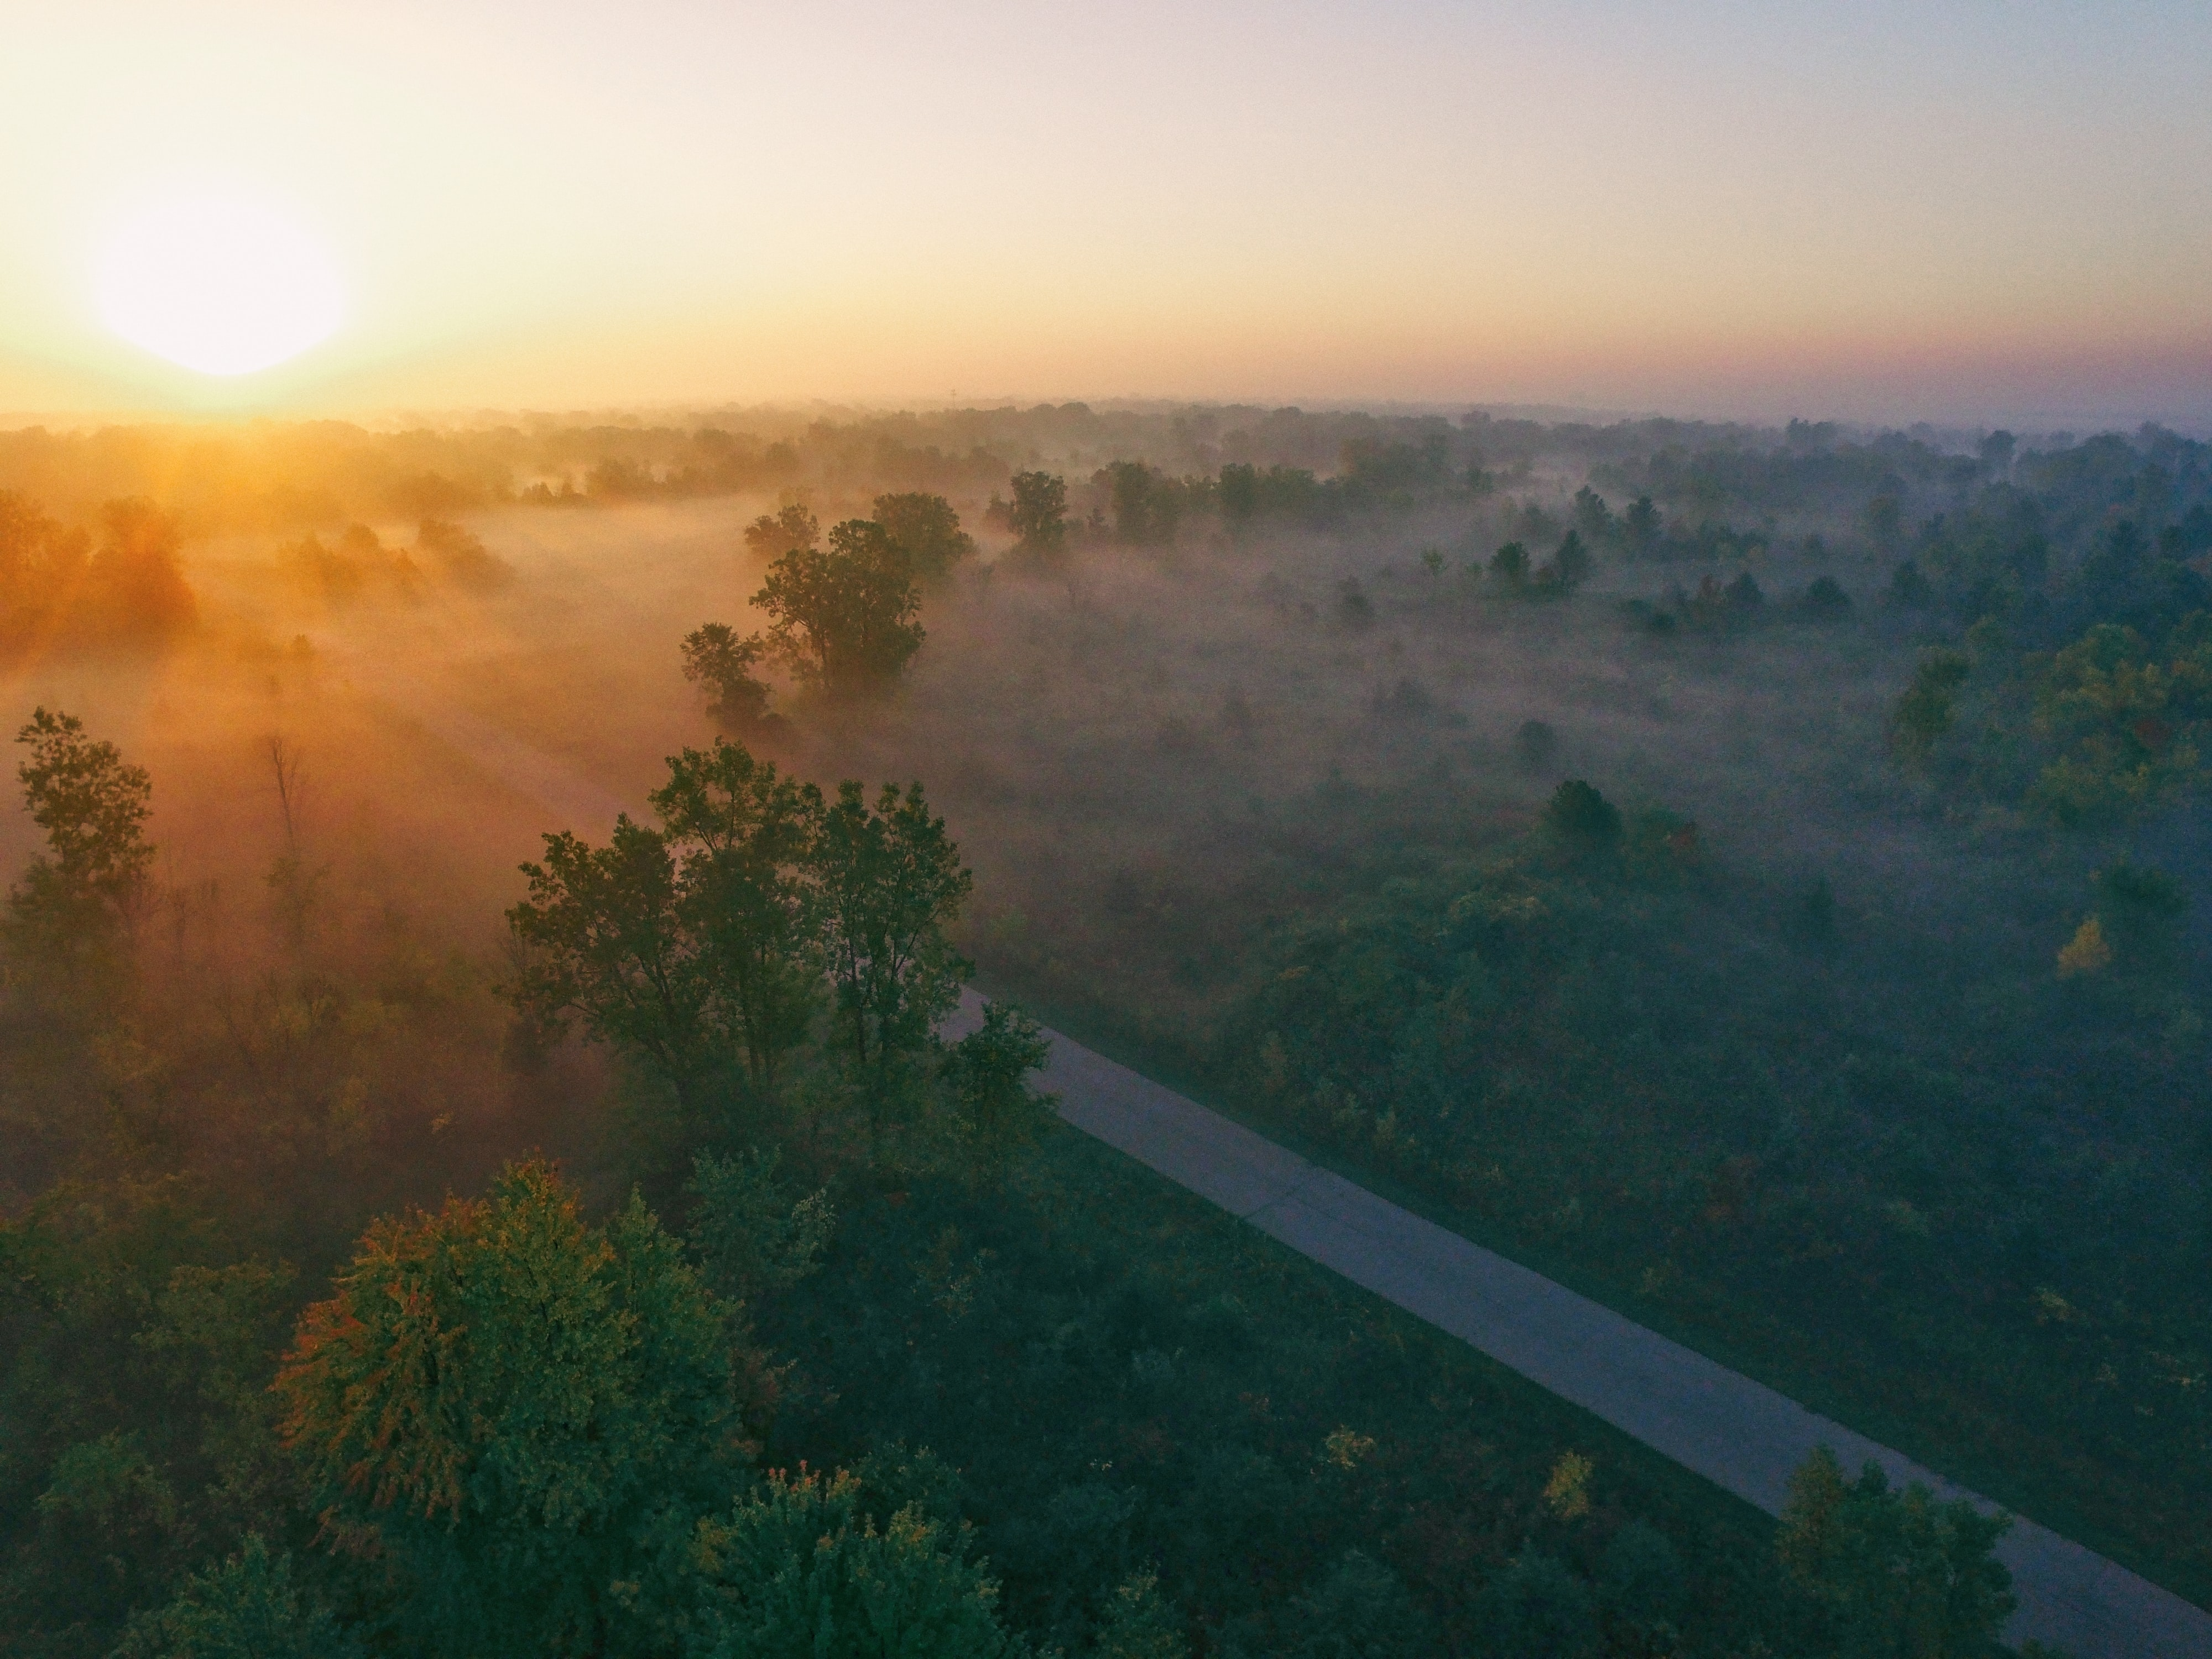 Drone view of misty countryside and through road at dawn-or-dusk in Flint, Michigan